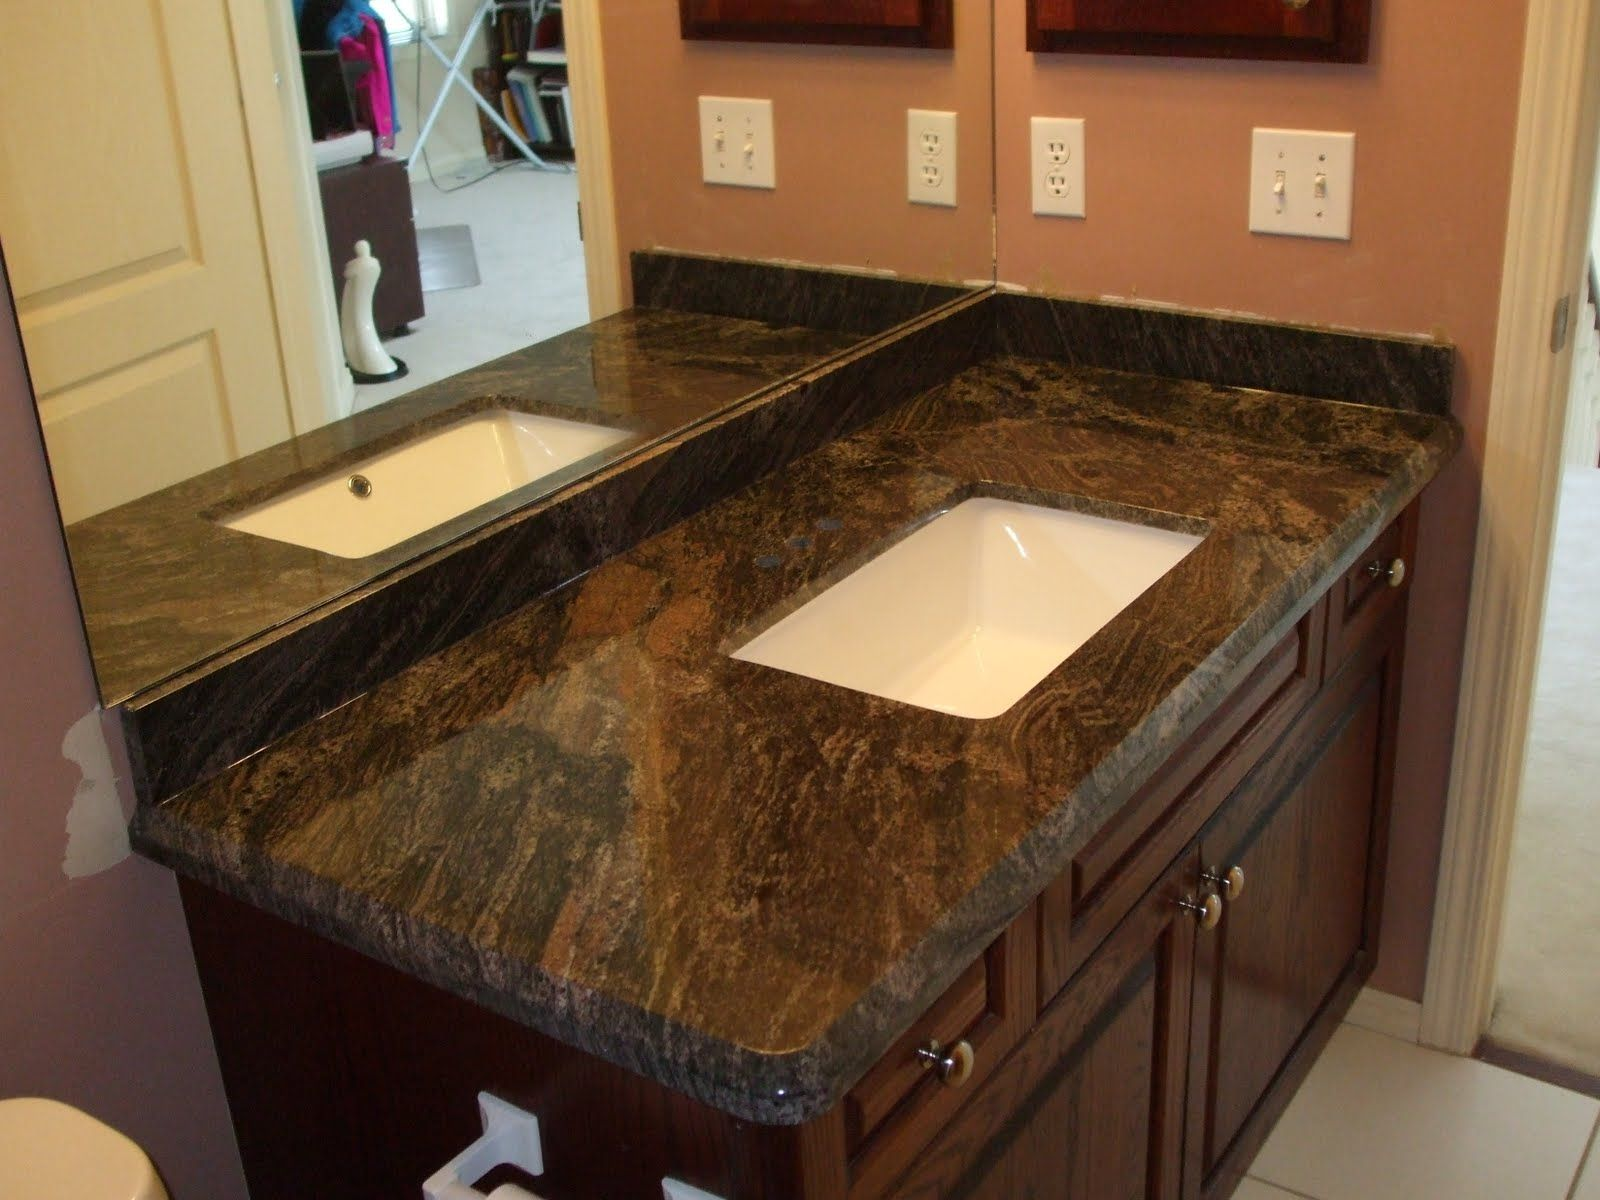 brown granite countertops | postedgranite direct at 8 54 am